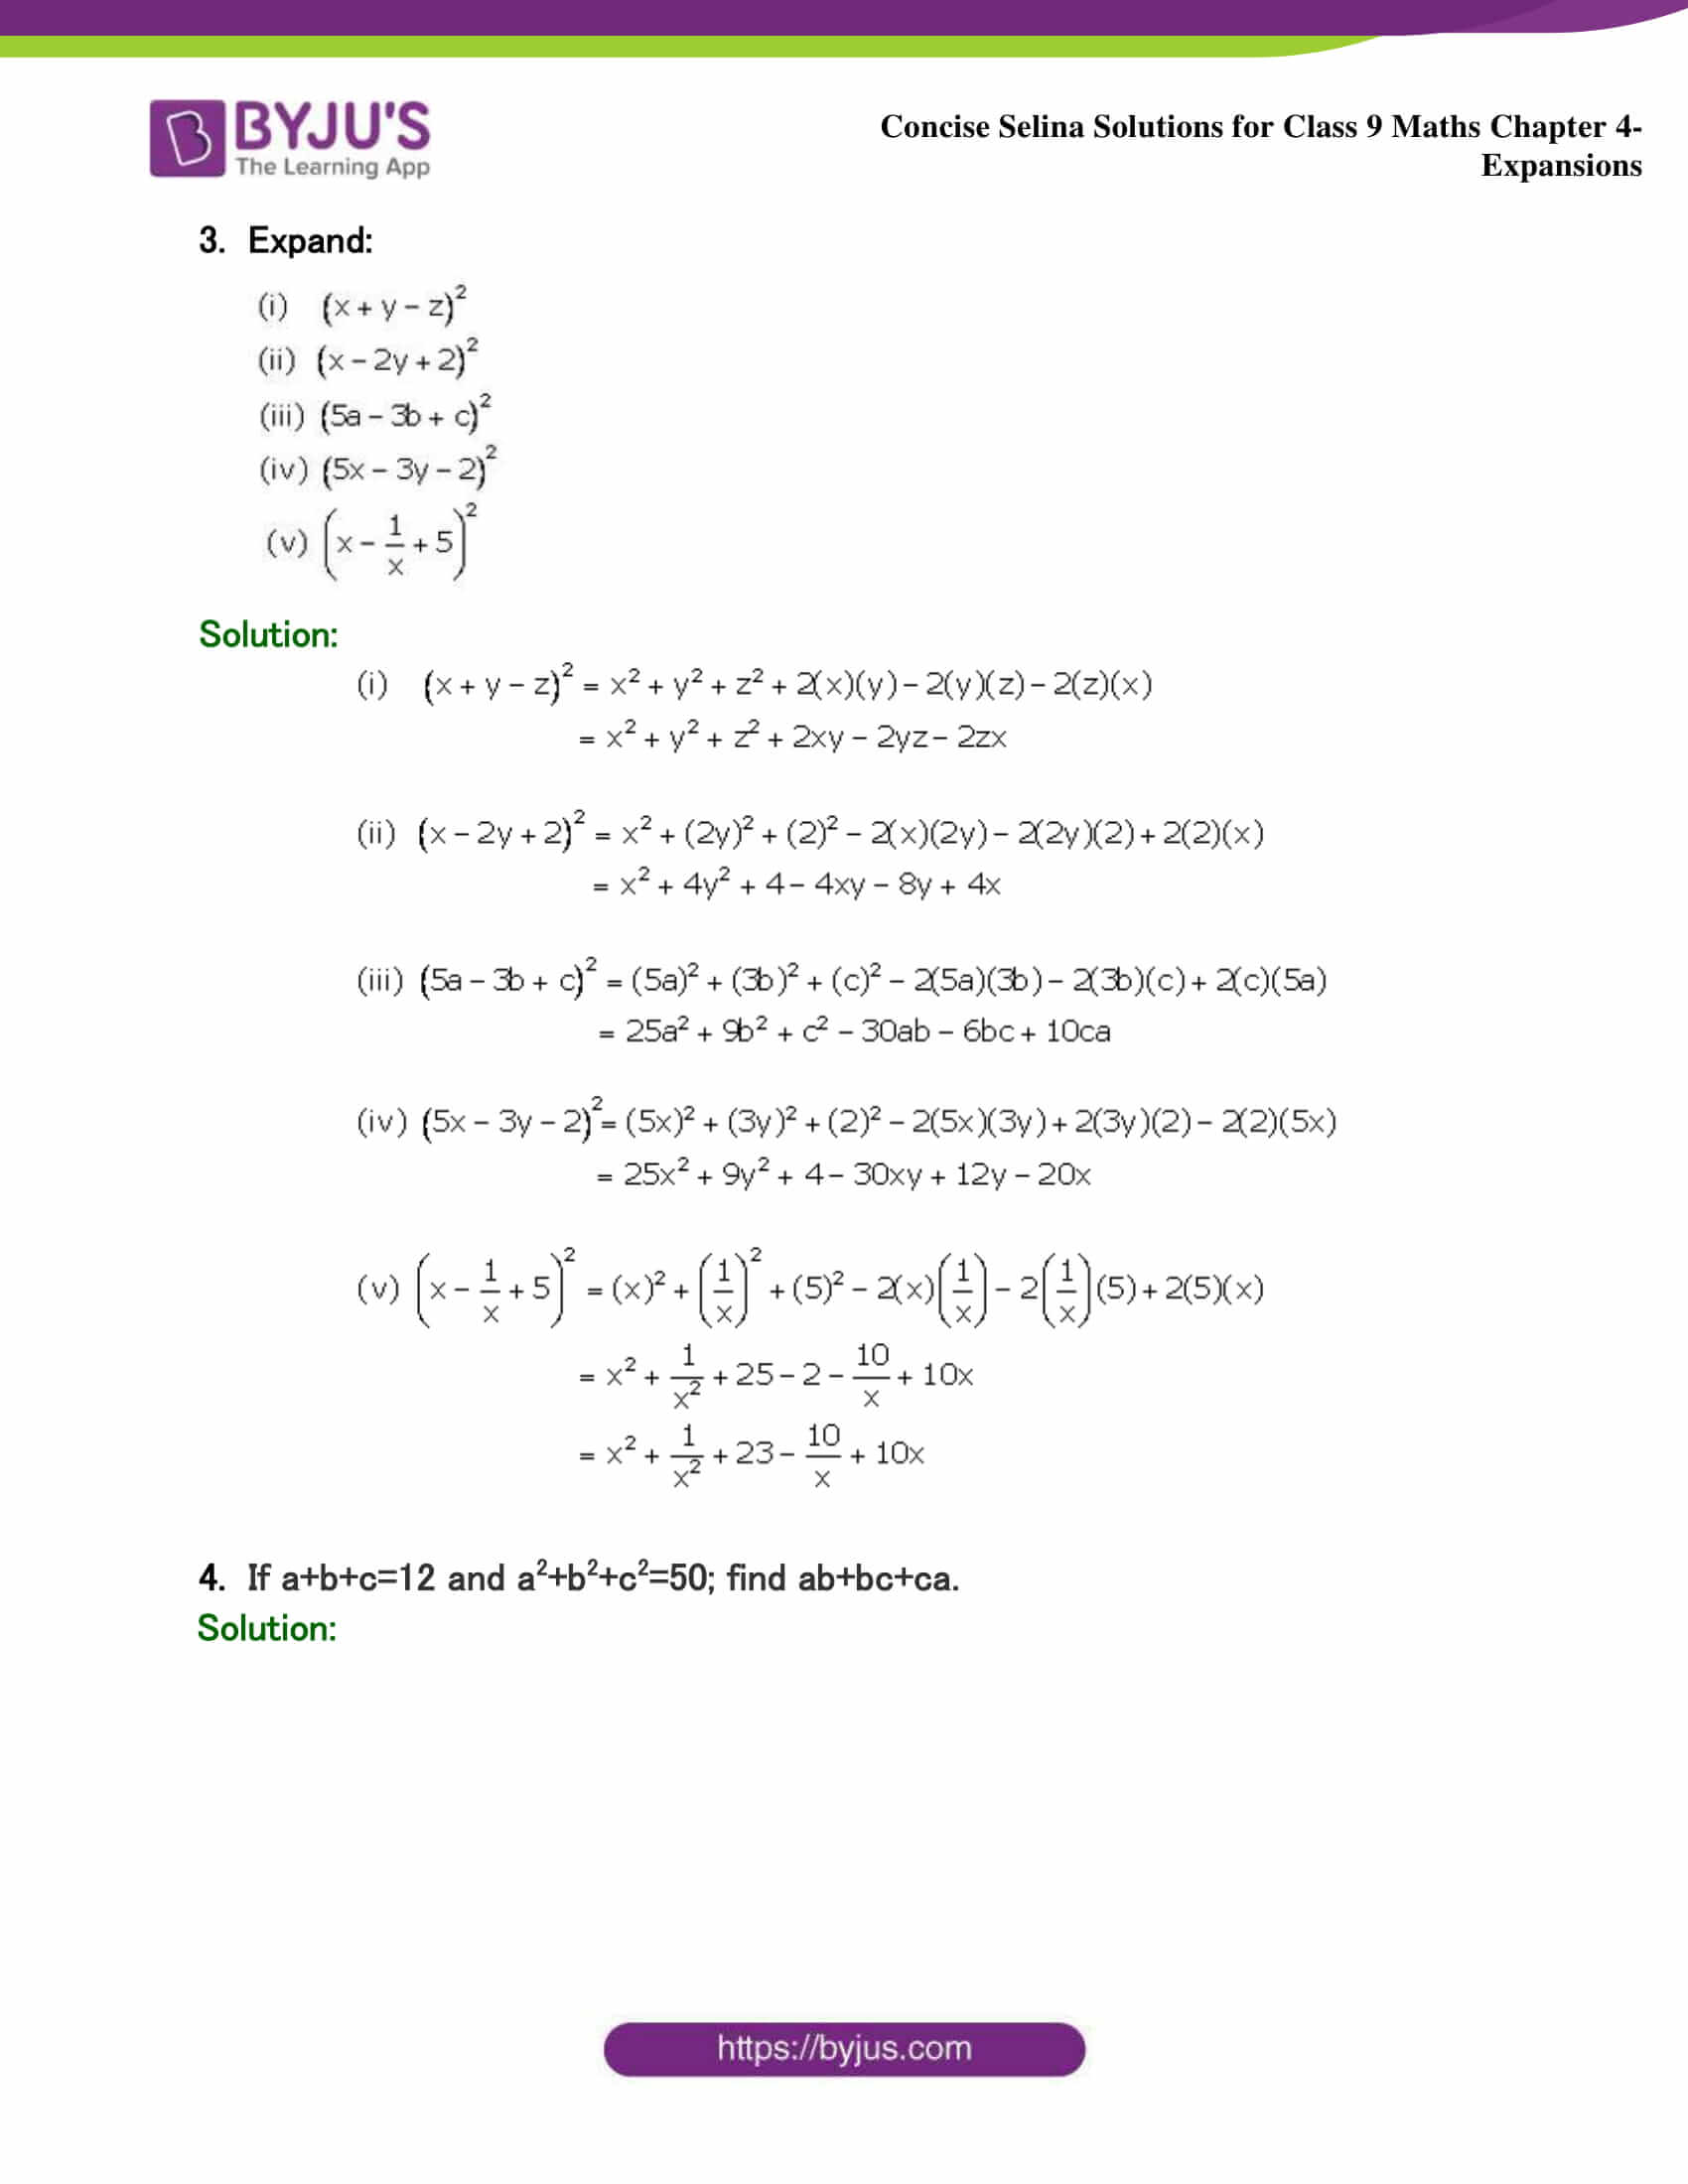 Selina Solutions Class 9 Maths Chapter 4 Expansions part 27